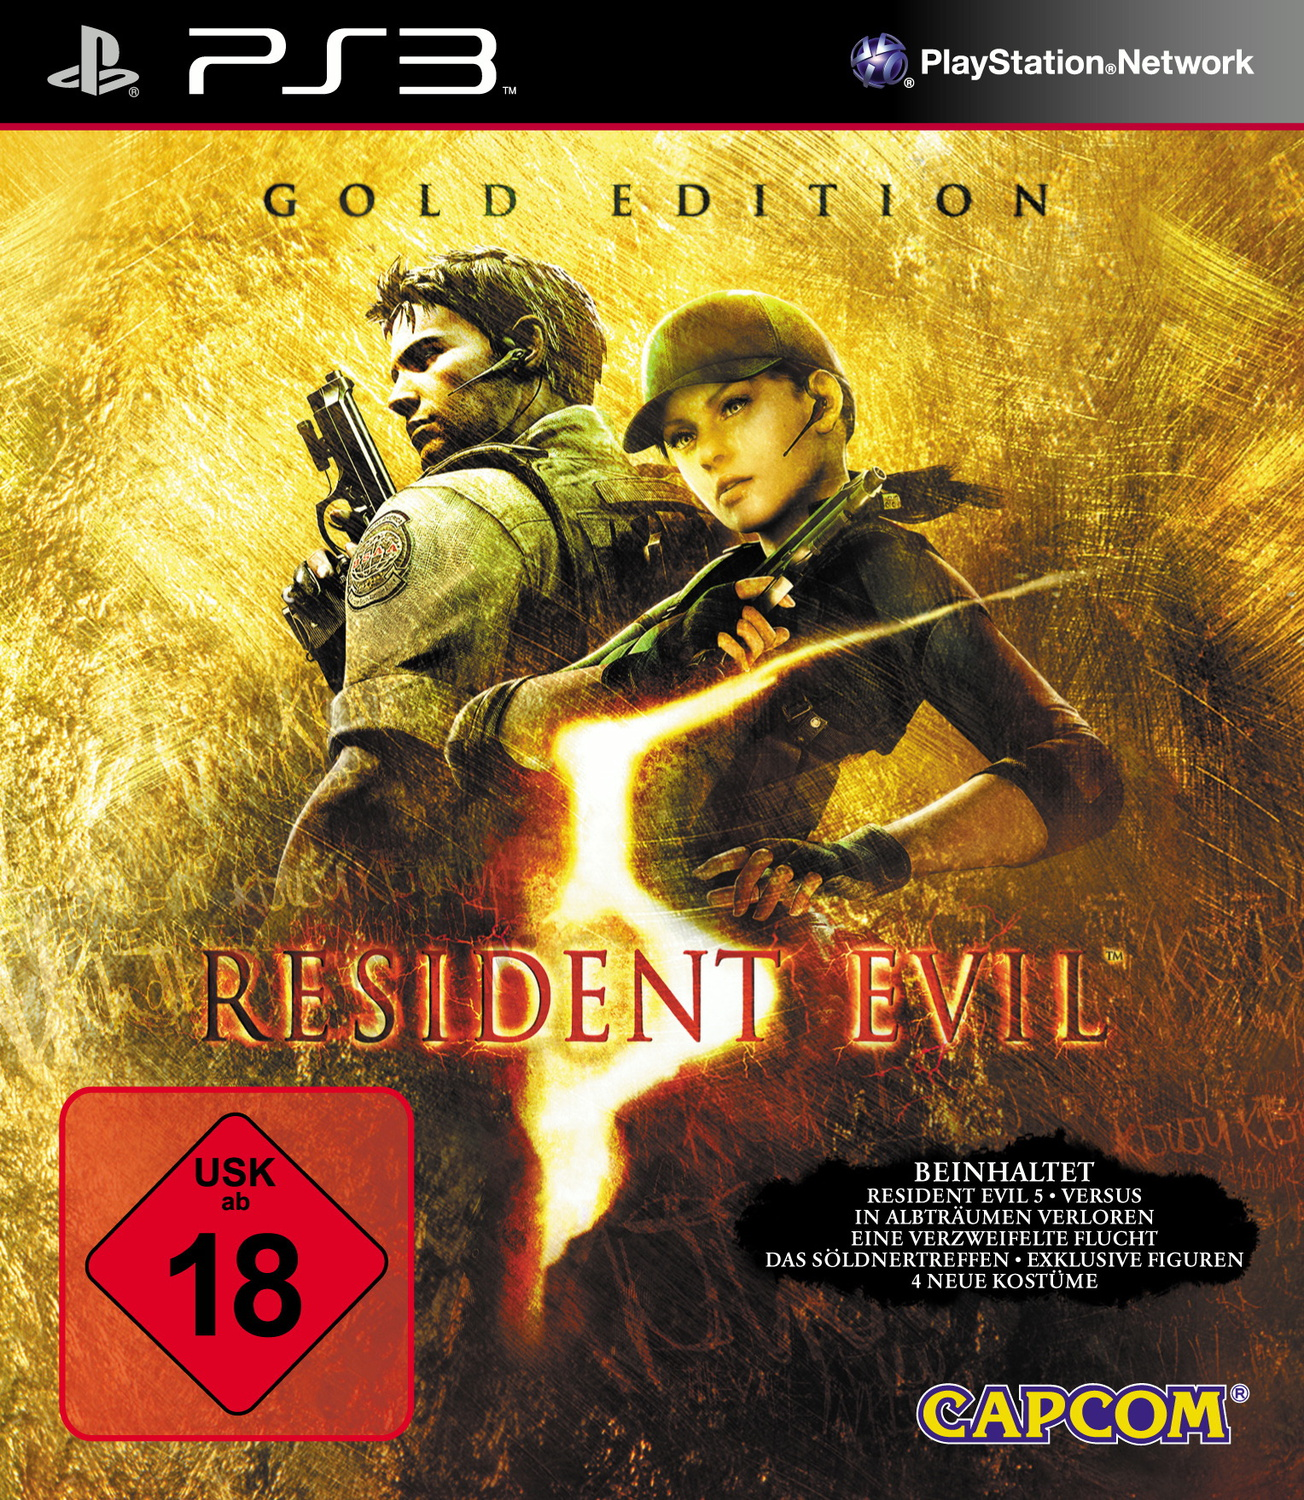 Resident Evil 5 [Gold Edition]